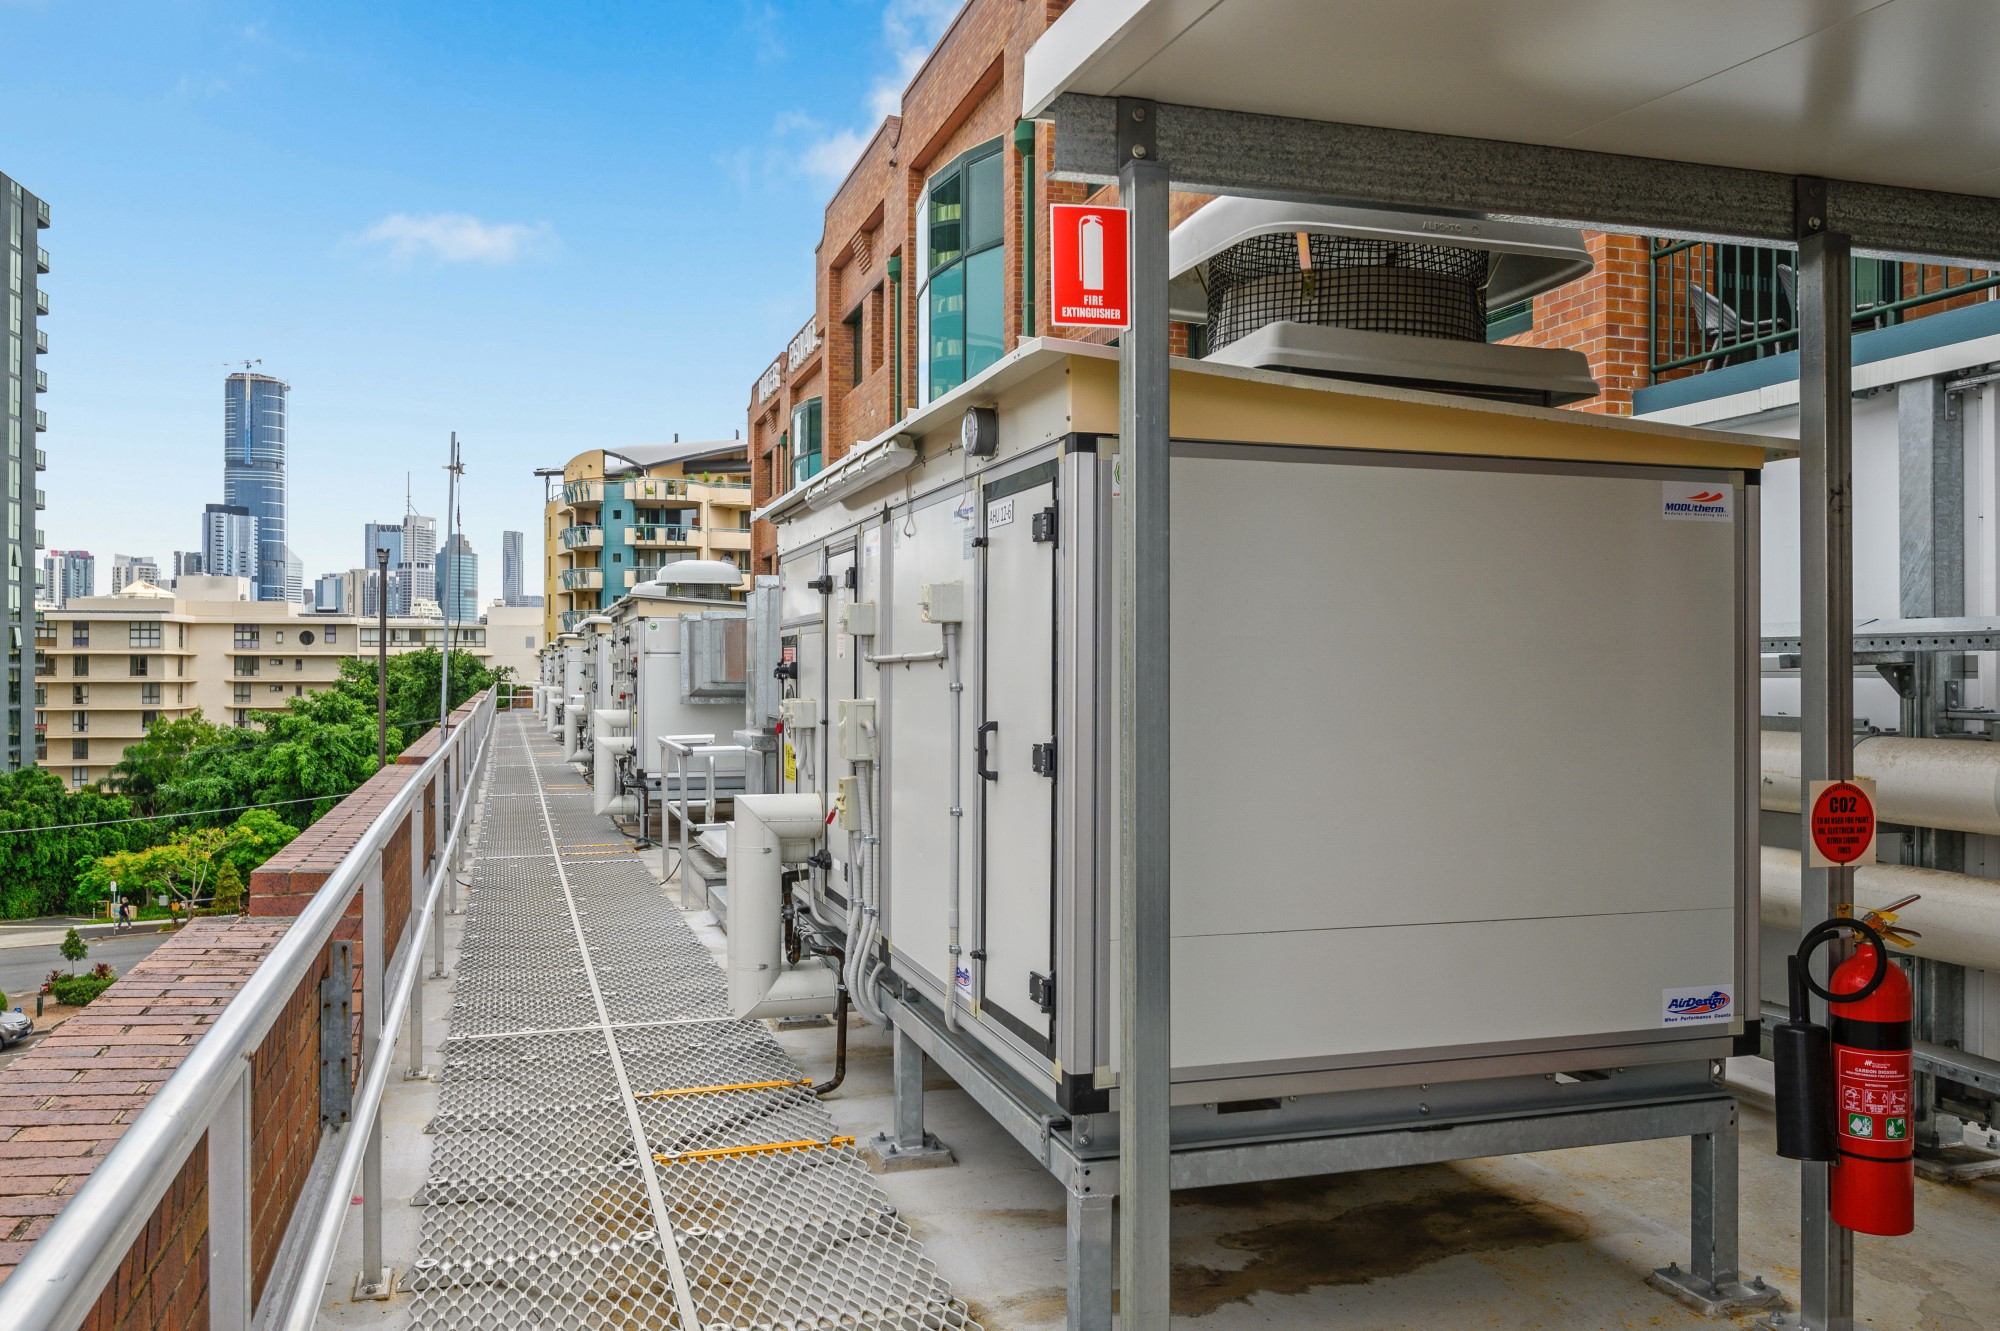 Mater Private Air Handling Unit Upgrade named as finalist in 2019 AIRAH Best HVAC Retrofit or Upgrade Award